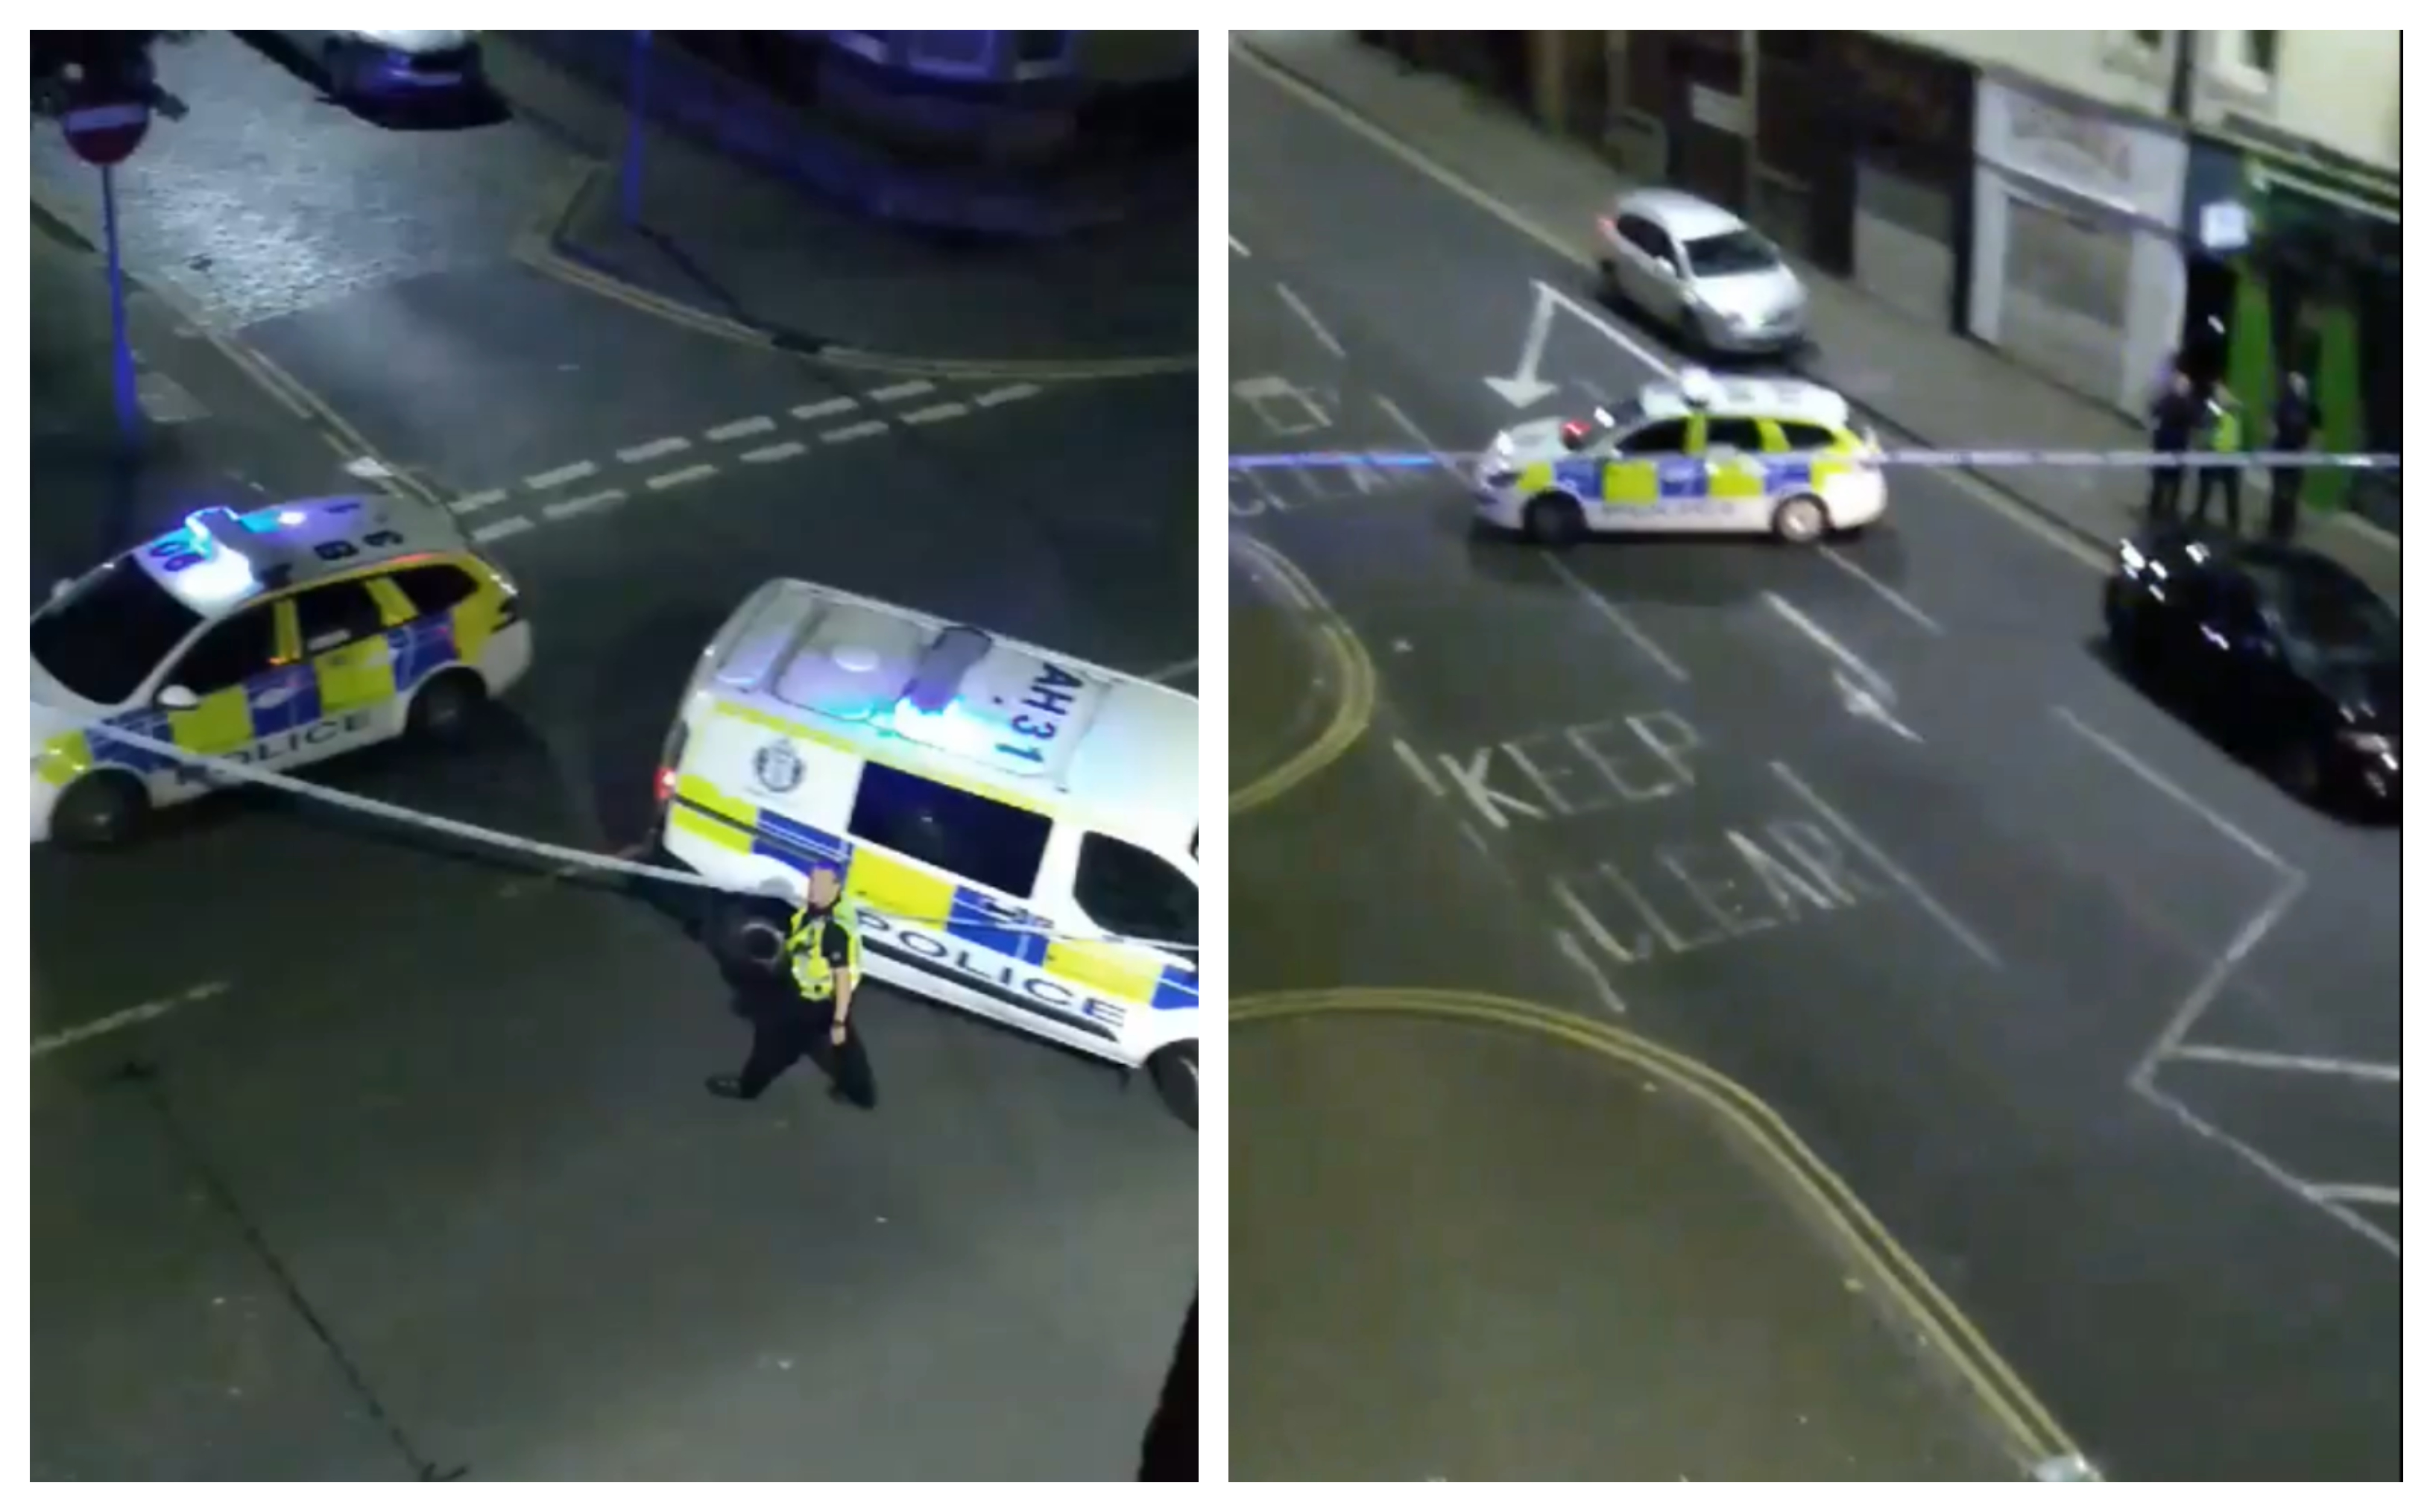 Kinnoull Street, Perth, was closed as police dealt with the incident.